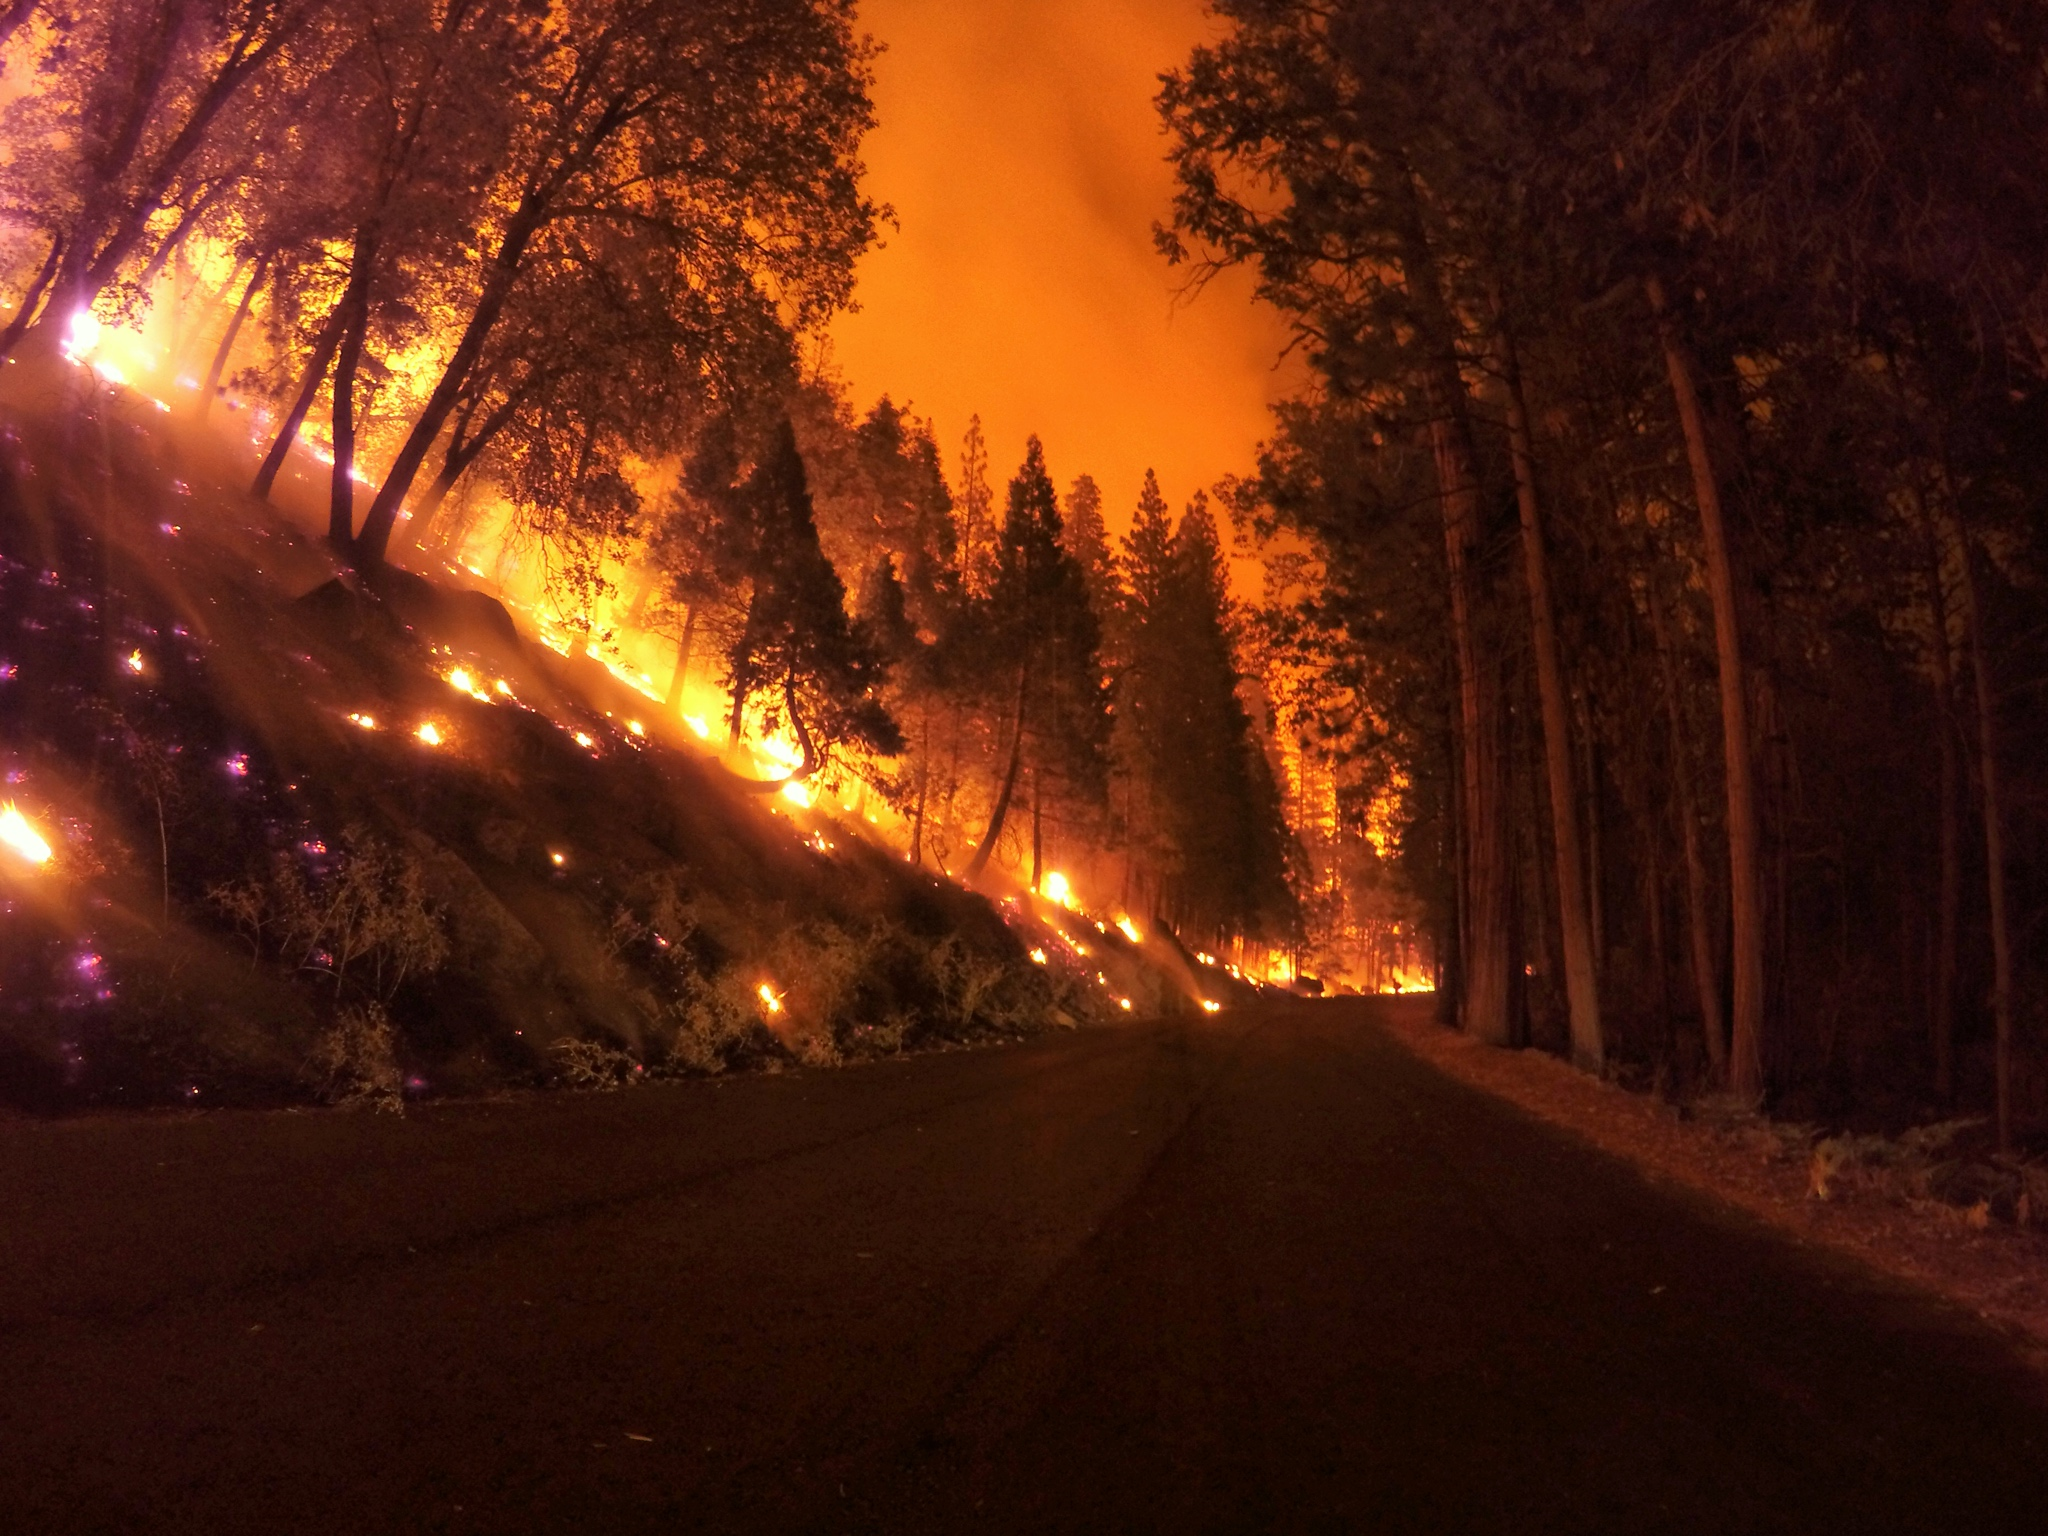 Photo of wildland fire taken by ExpertVoice Expert Gregg Boydston